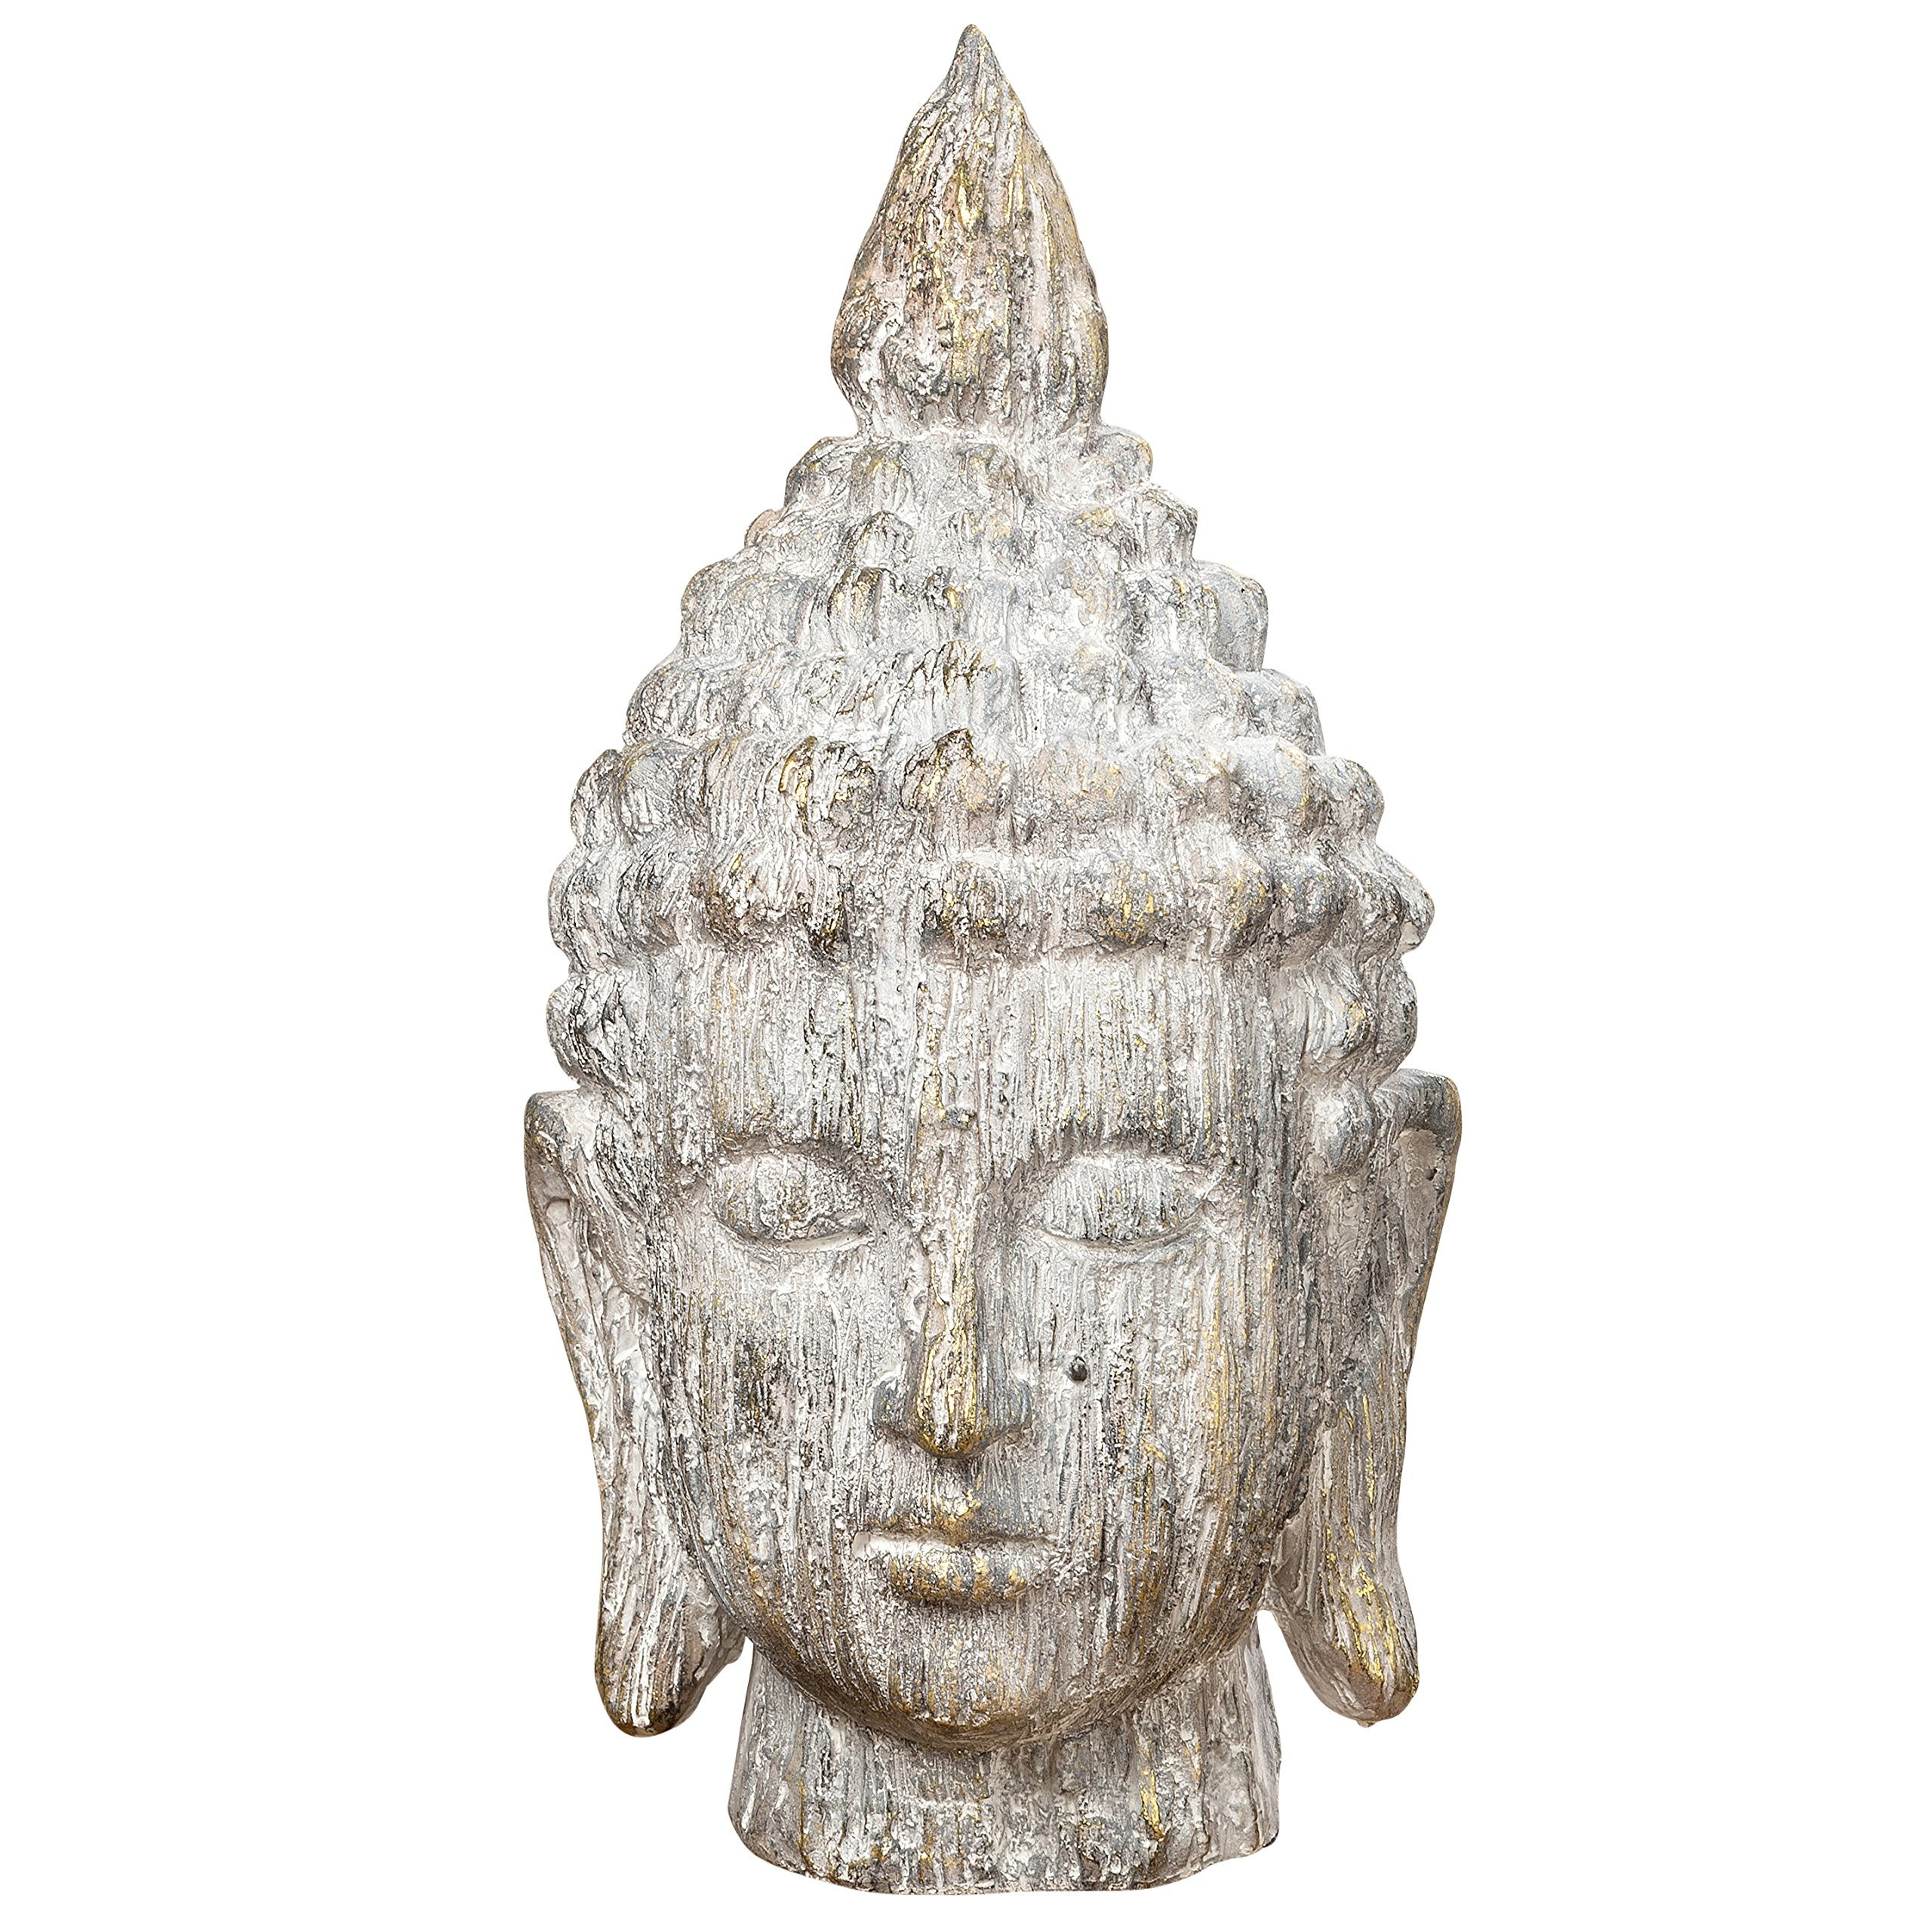 Whole House Worlds The Urban Zen Buddha Head Portrait Bust, For Meditation Zones, Spas,or Gardens, Rustic Gray, Artisan Cast Magnesia, Shabby Distressed Tonal Patina 16 1/4 Inches Tall